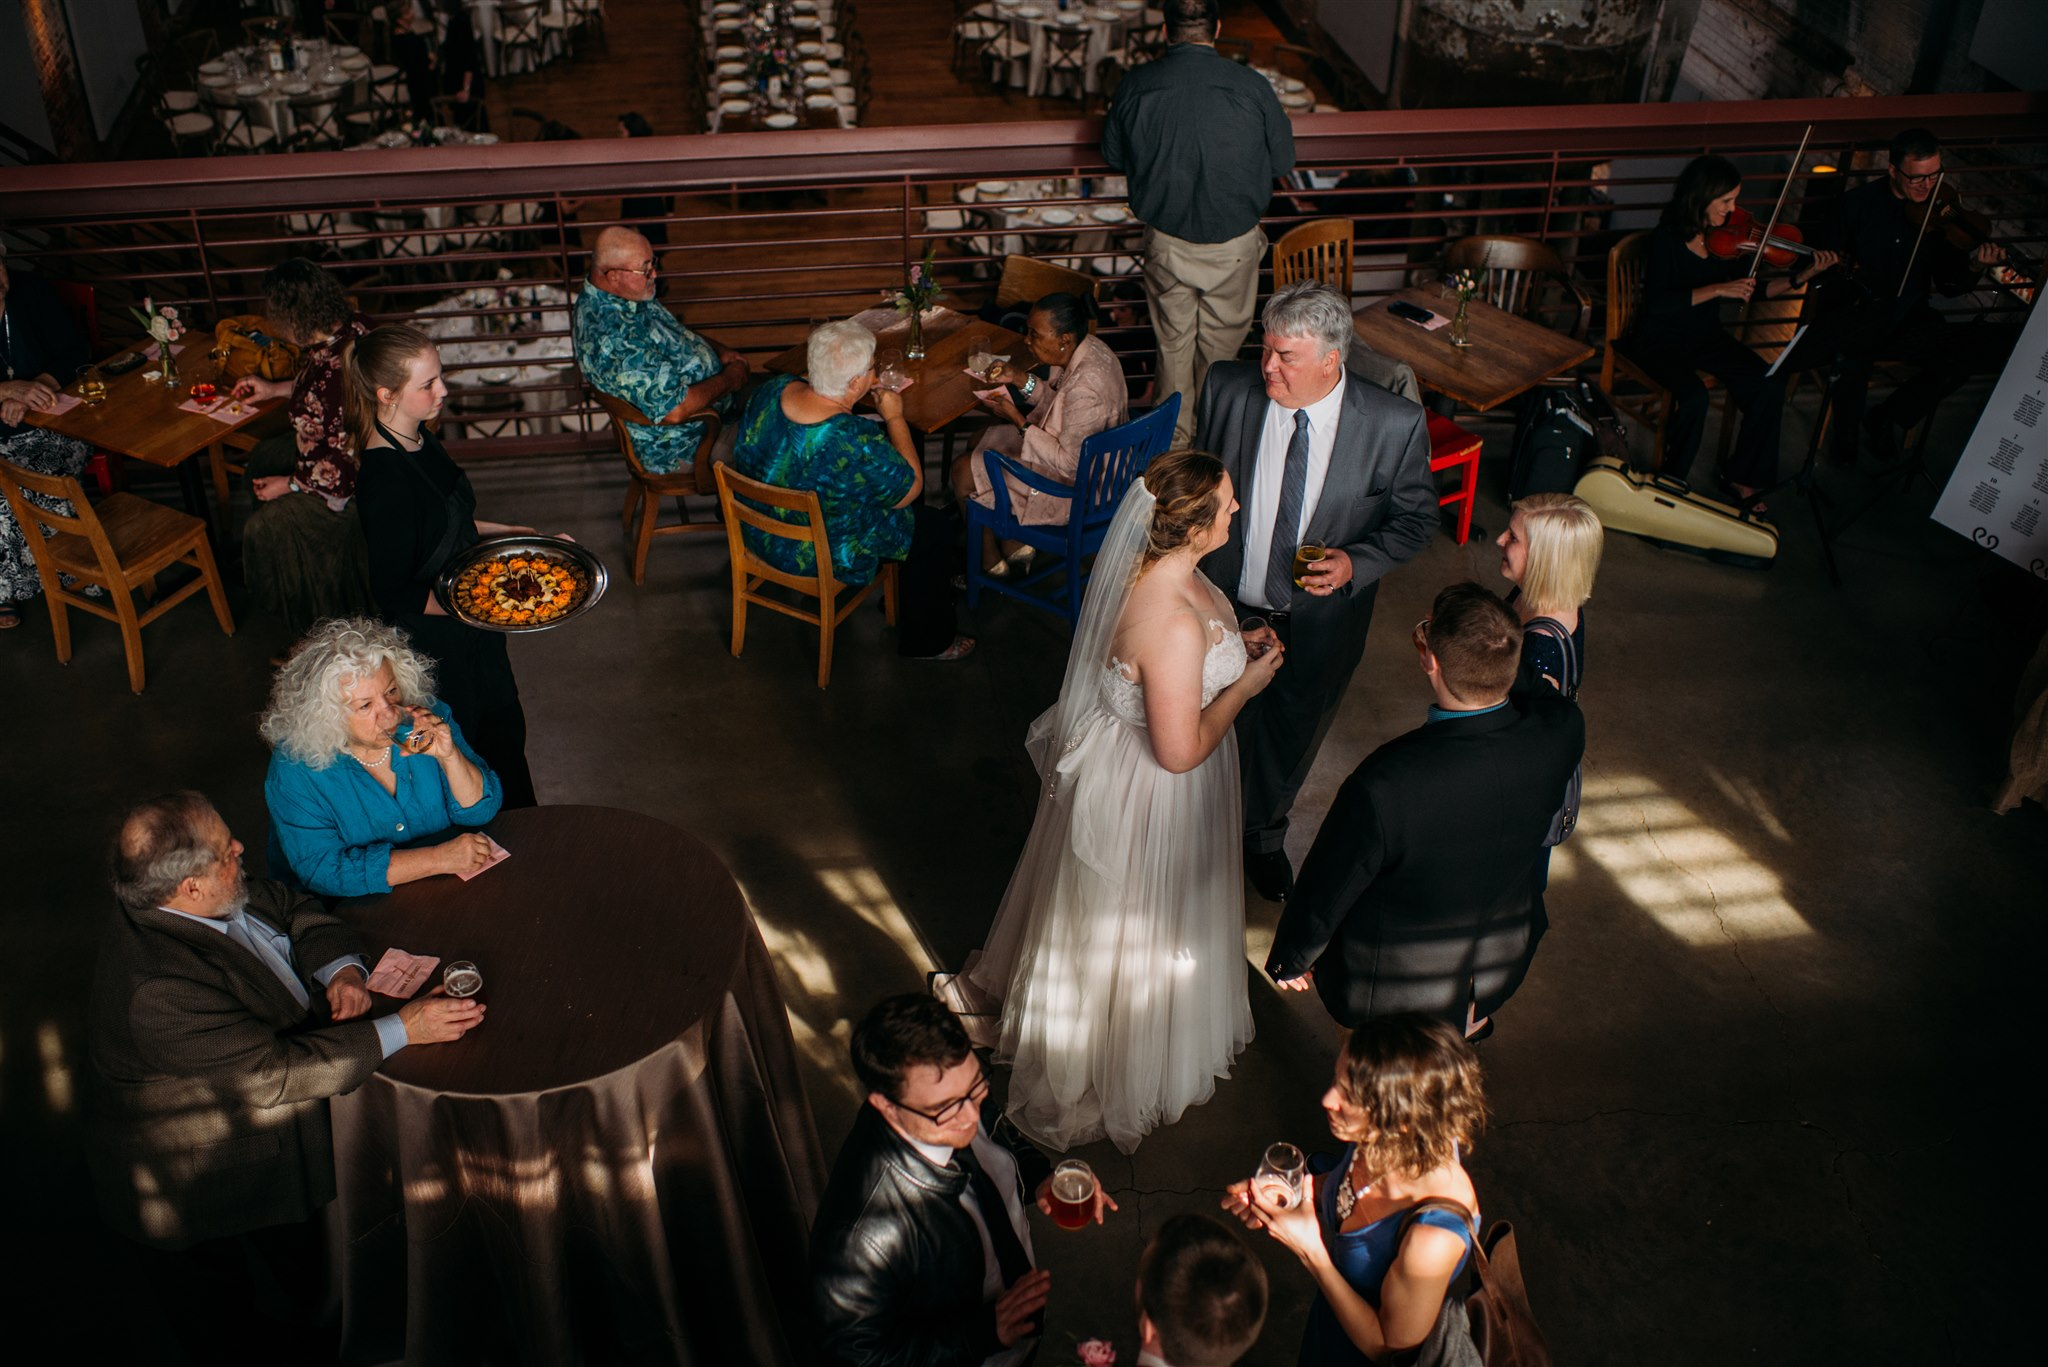 Saxapahaw Wedding Photographer - Saxapahaw Engagement - North Carolina Wedding Photographer - Haw River Ballroom Wedding Photographer - Raleigh Wedding Photographer